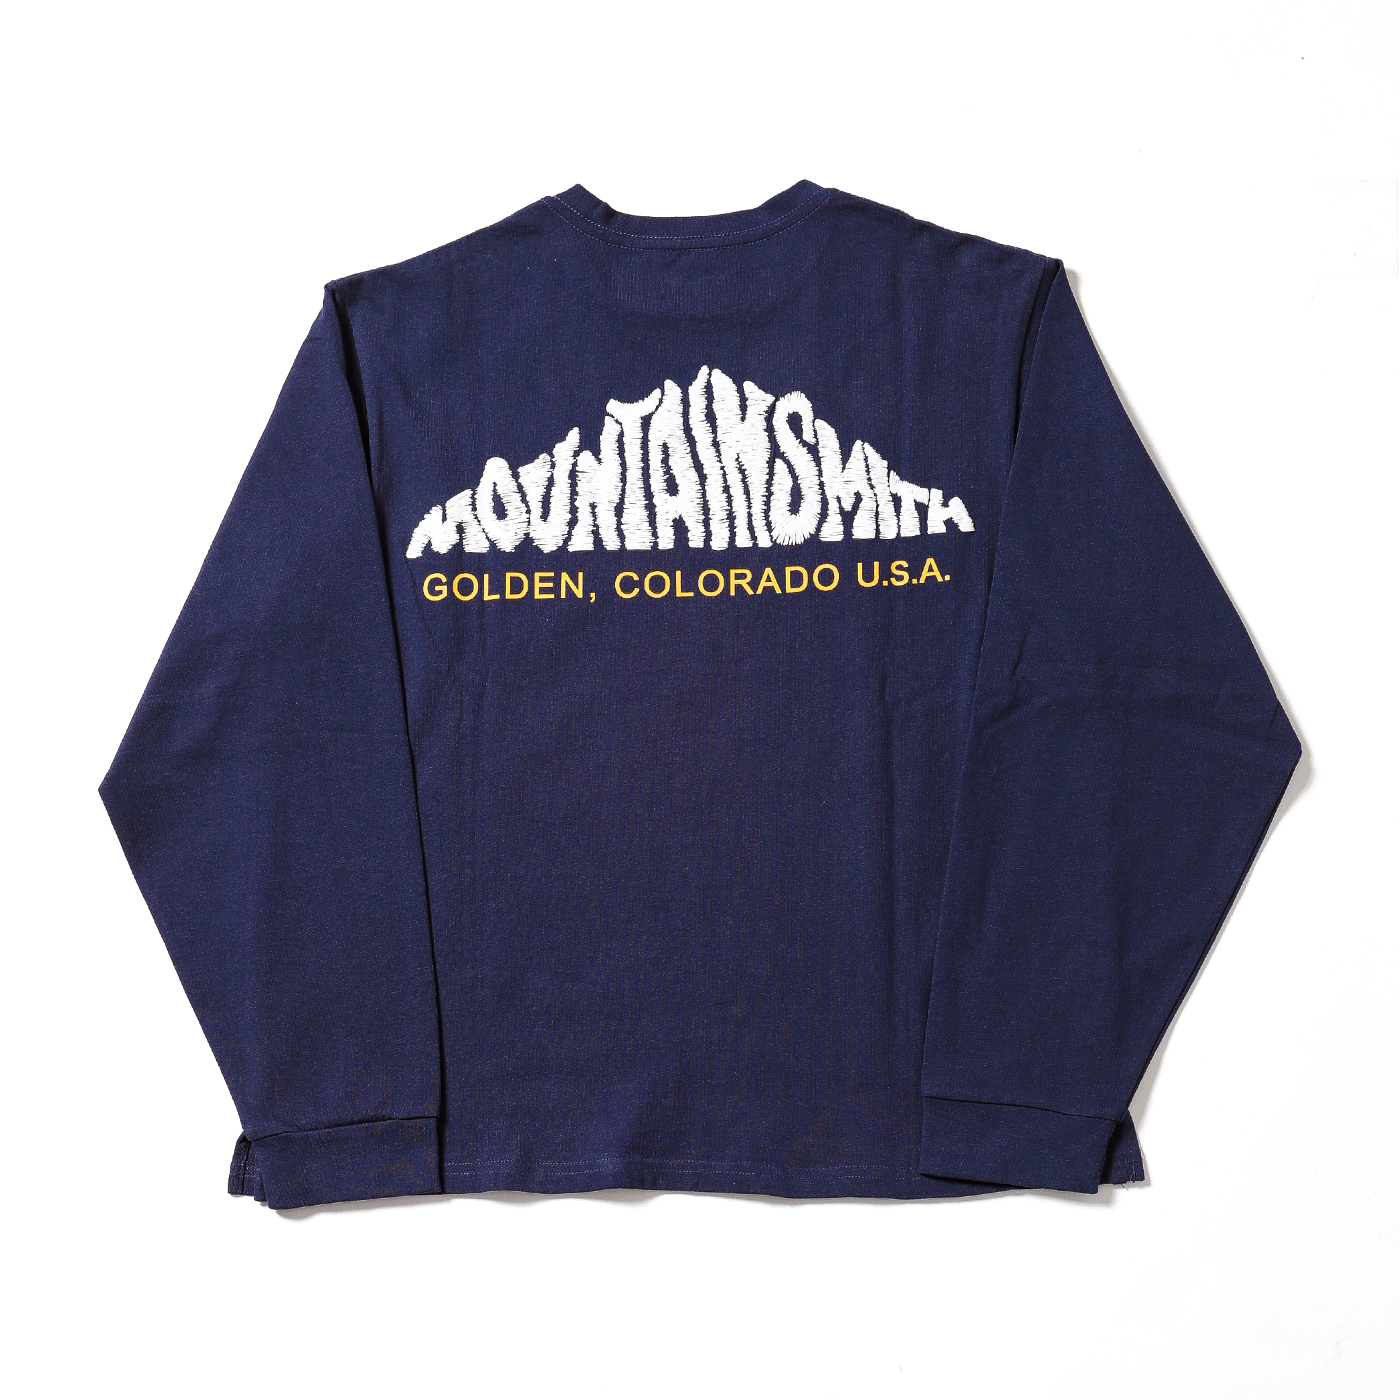 product: MS EMBRO LS / color: NAVY 2